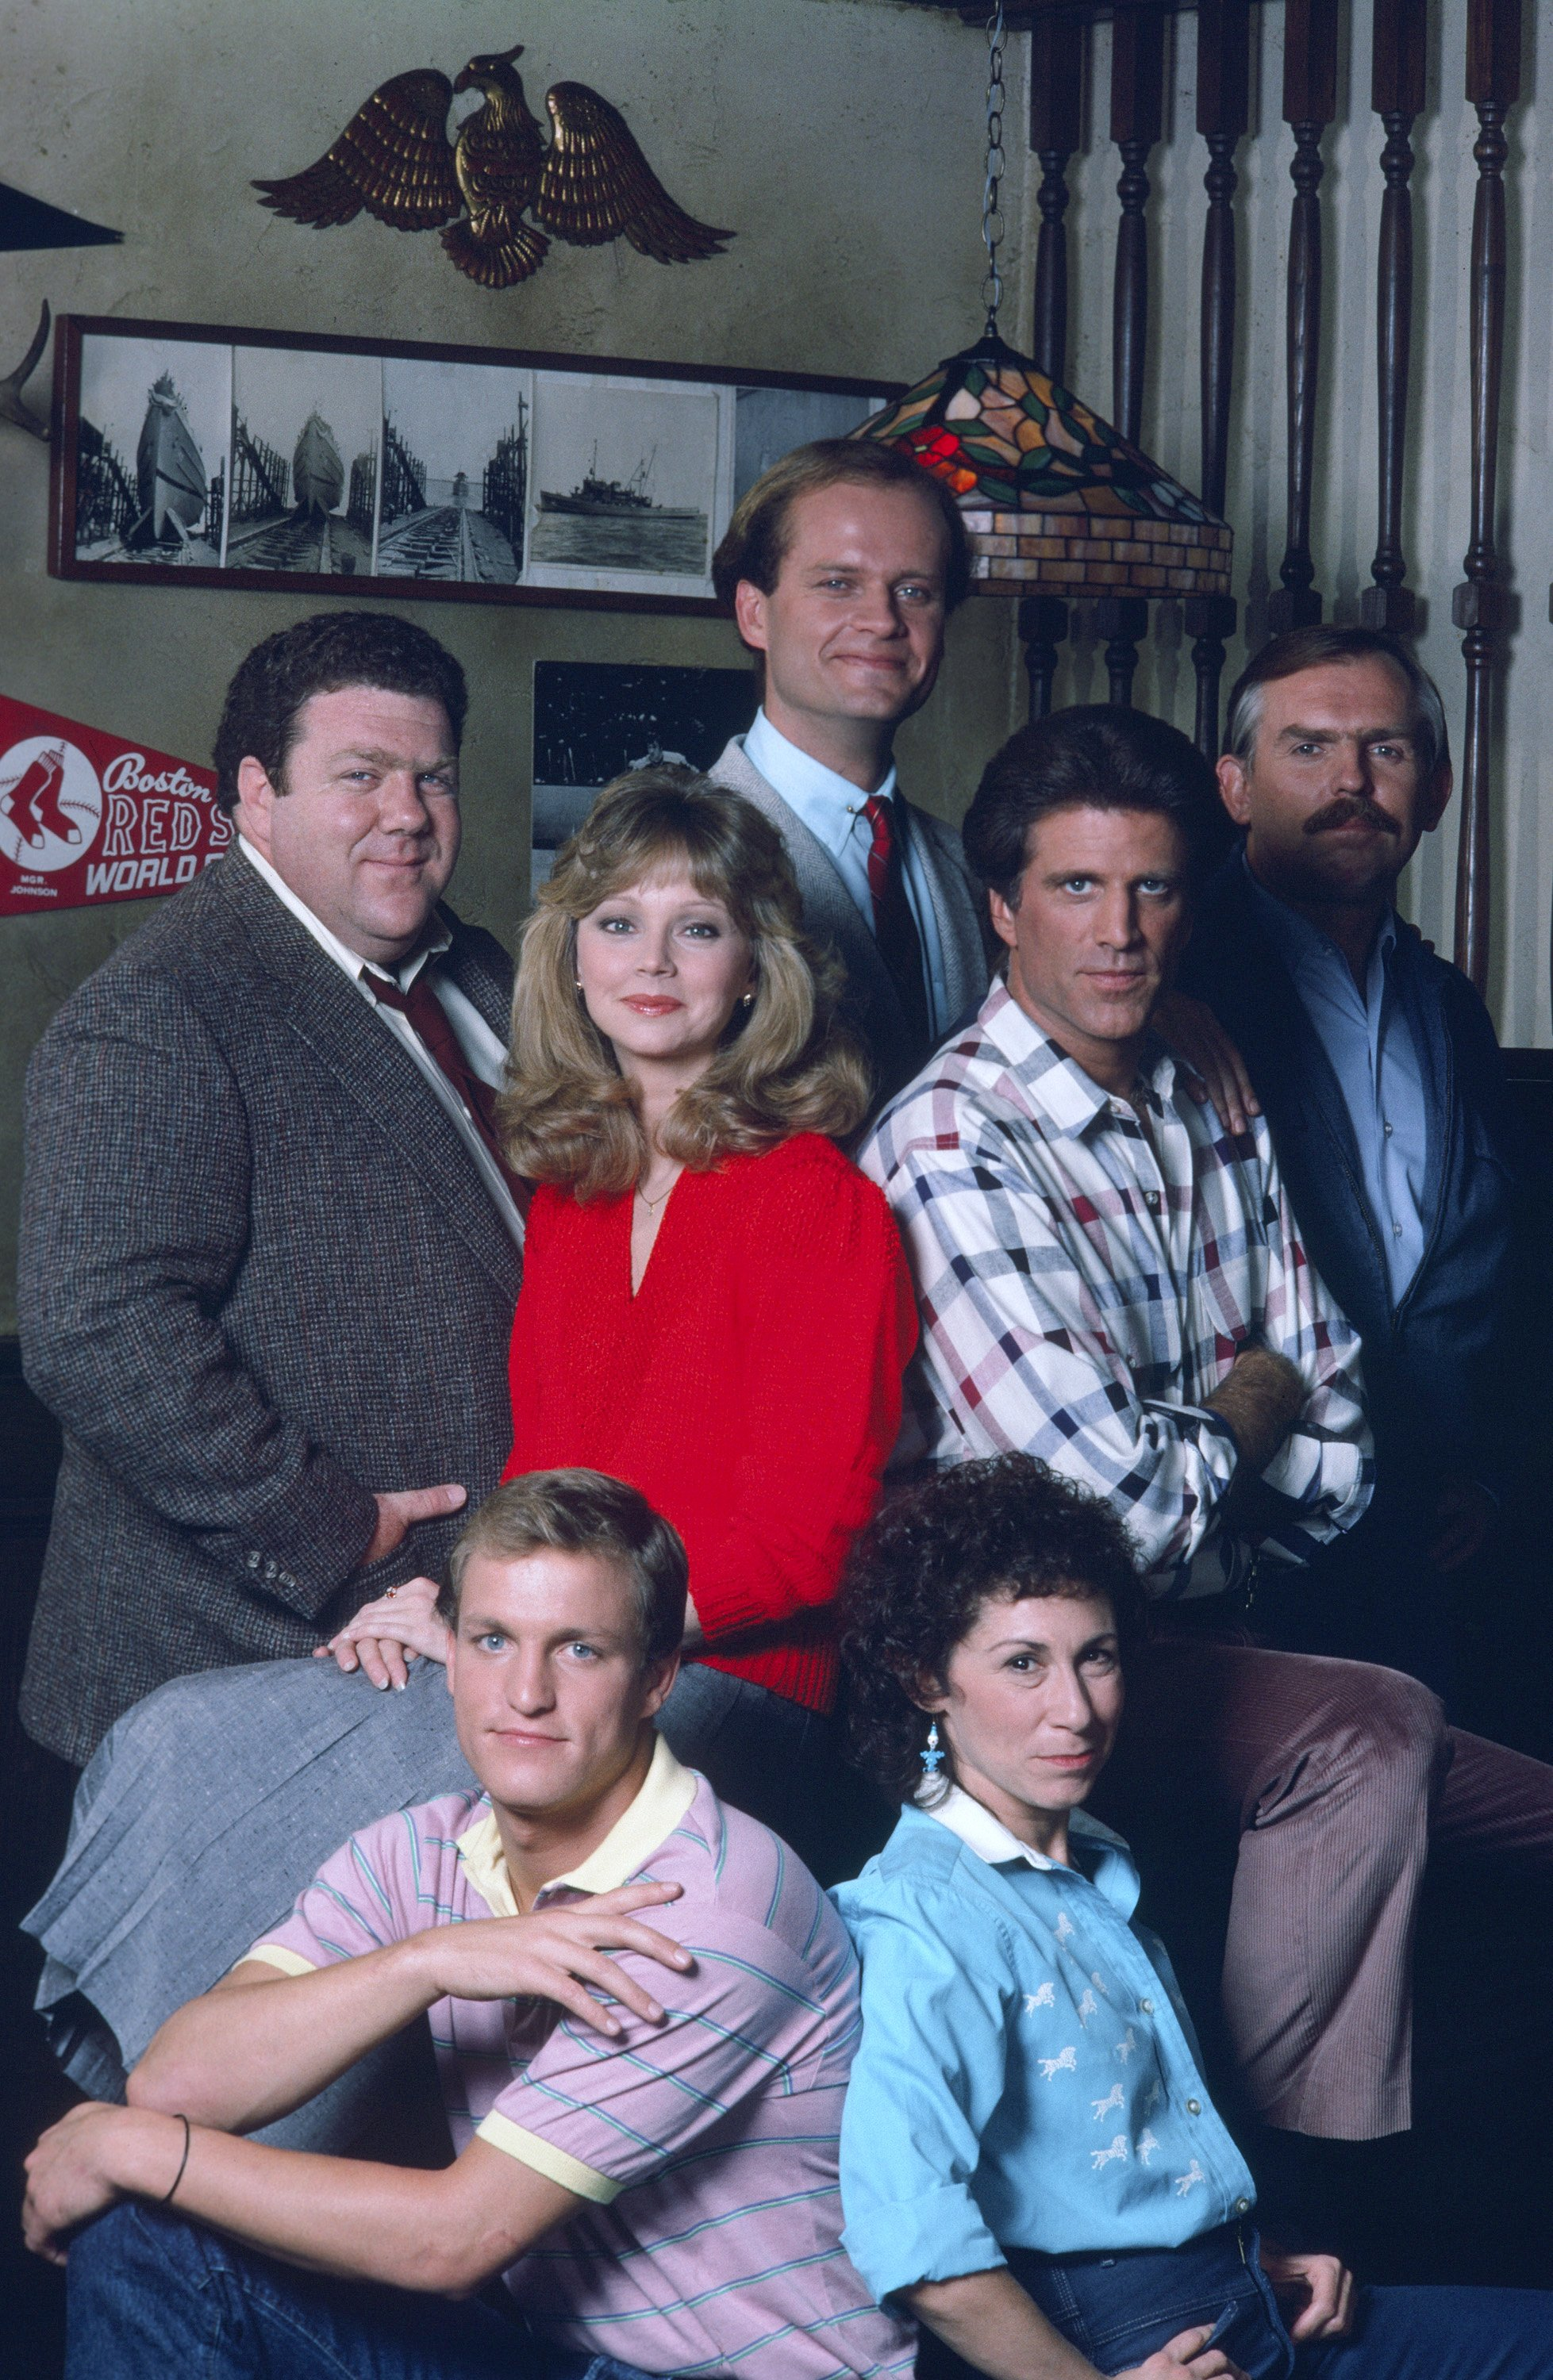 """The cast of """"Cheers"""" George Wendt, Shelley Long, Woody Harrelson, Kelsey Grammer, Ted Danson, Rhea Perlman, John Razenberger pose for a portrait 